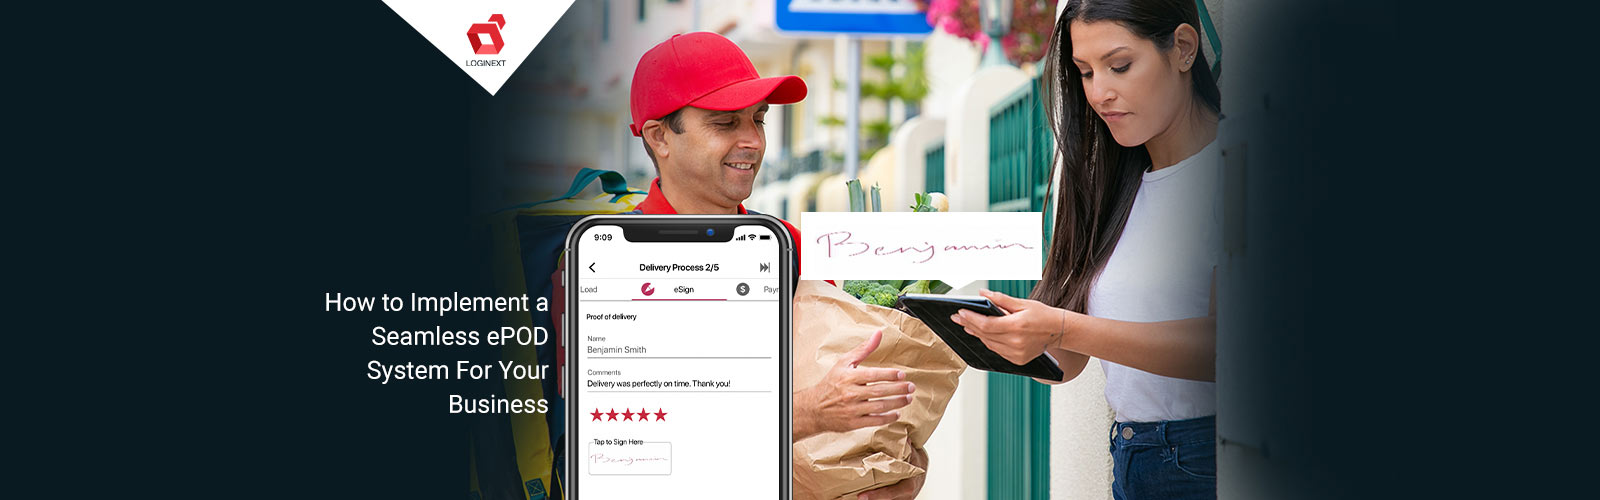 How Does ePOD (Electronic Proof of Delivery) Exactly Work?